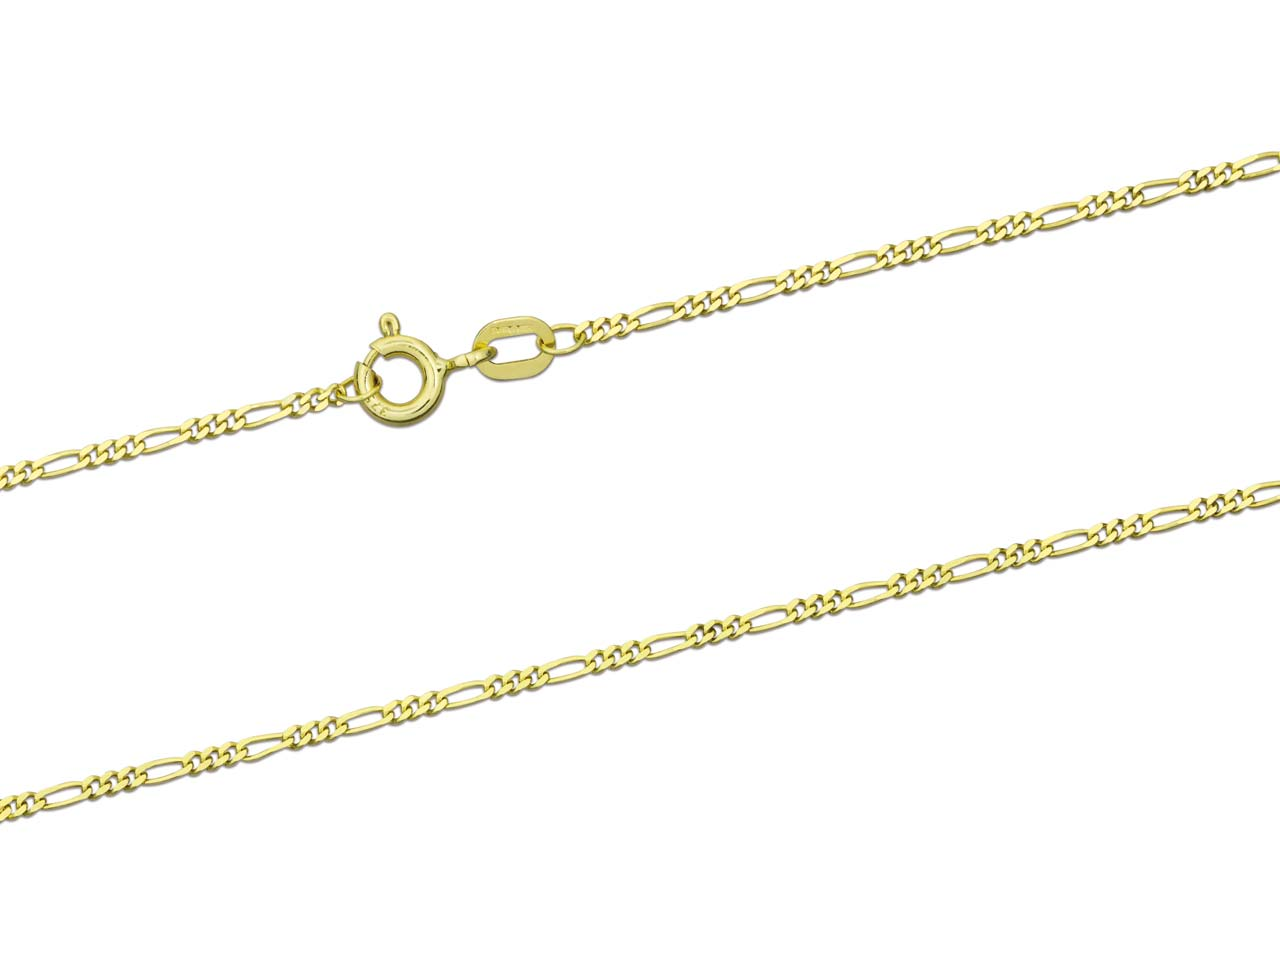 Jewellery Chain Types For Beginners The Bench